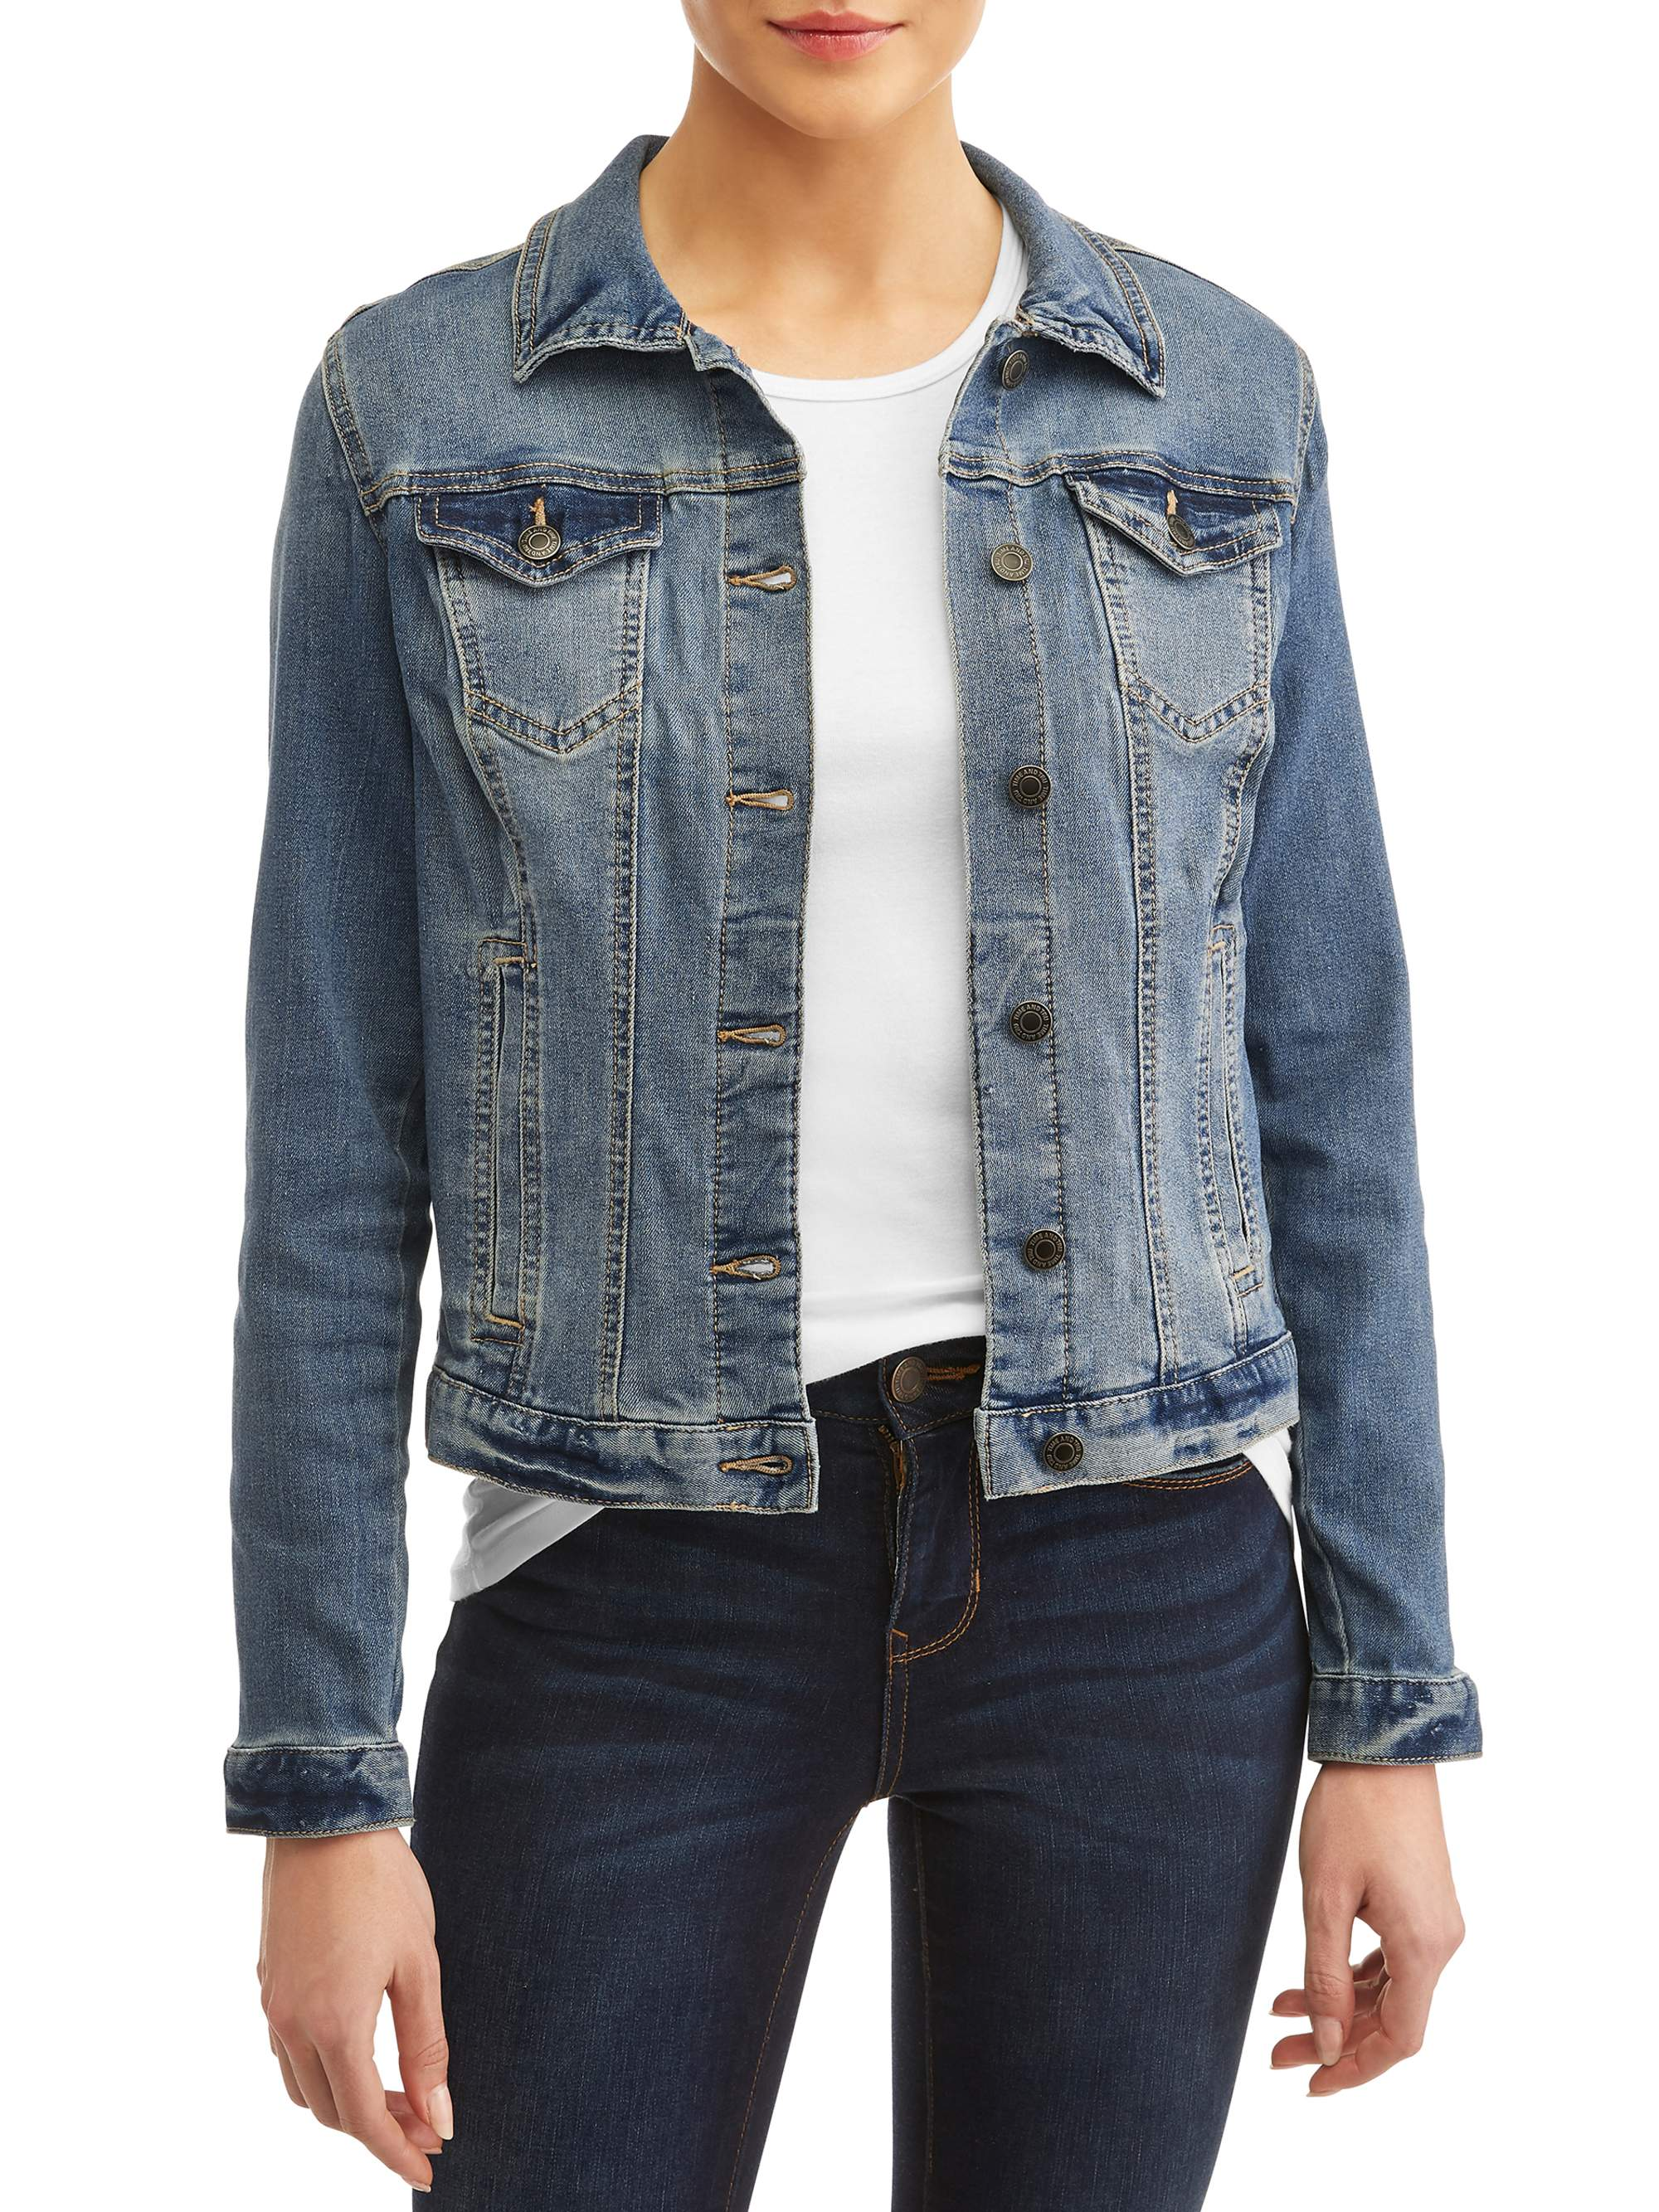 Design by Olivia Womens Classic Casual Vintage Blue Stone Washed Denim Jean Jacket Dark Denim M